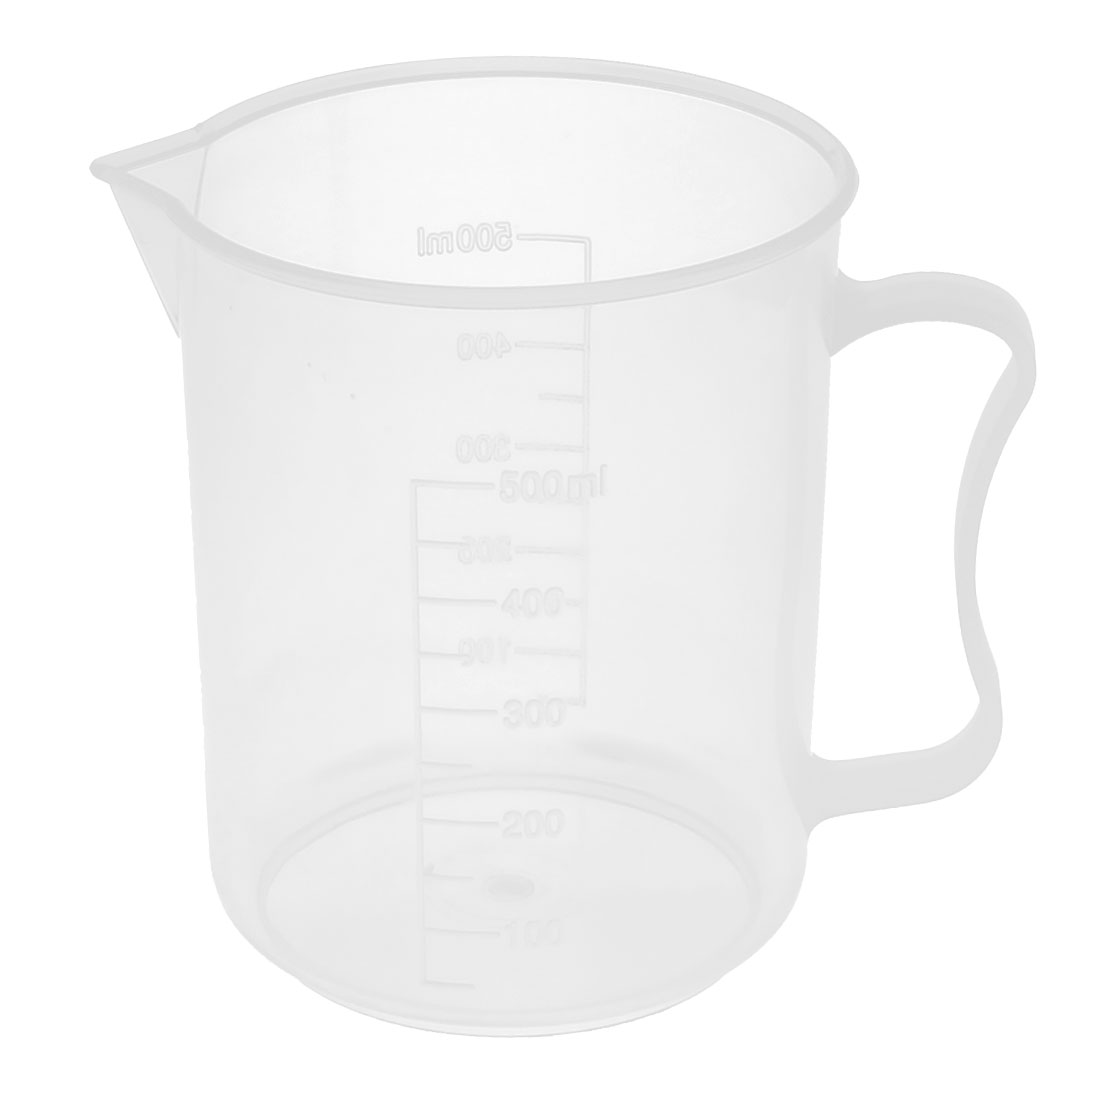 School Laboratory Plastic Water Liquid Container Measuring Testing Beaker 500ml